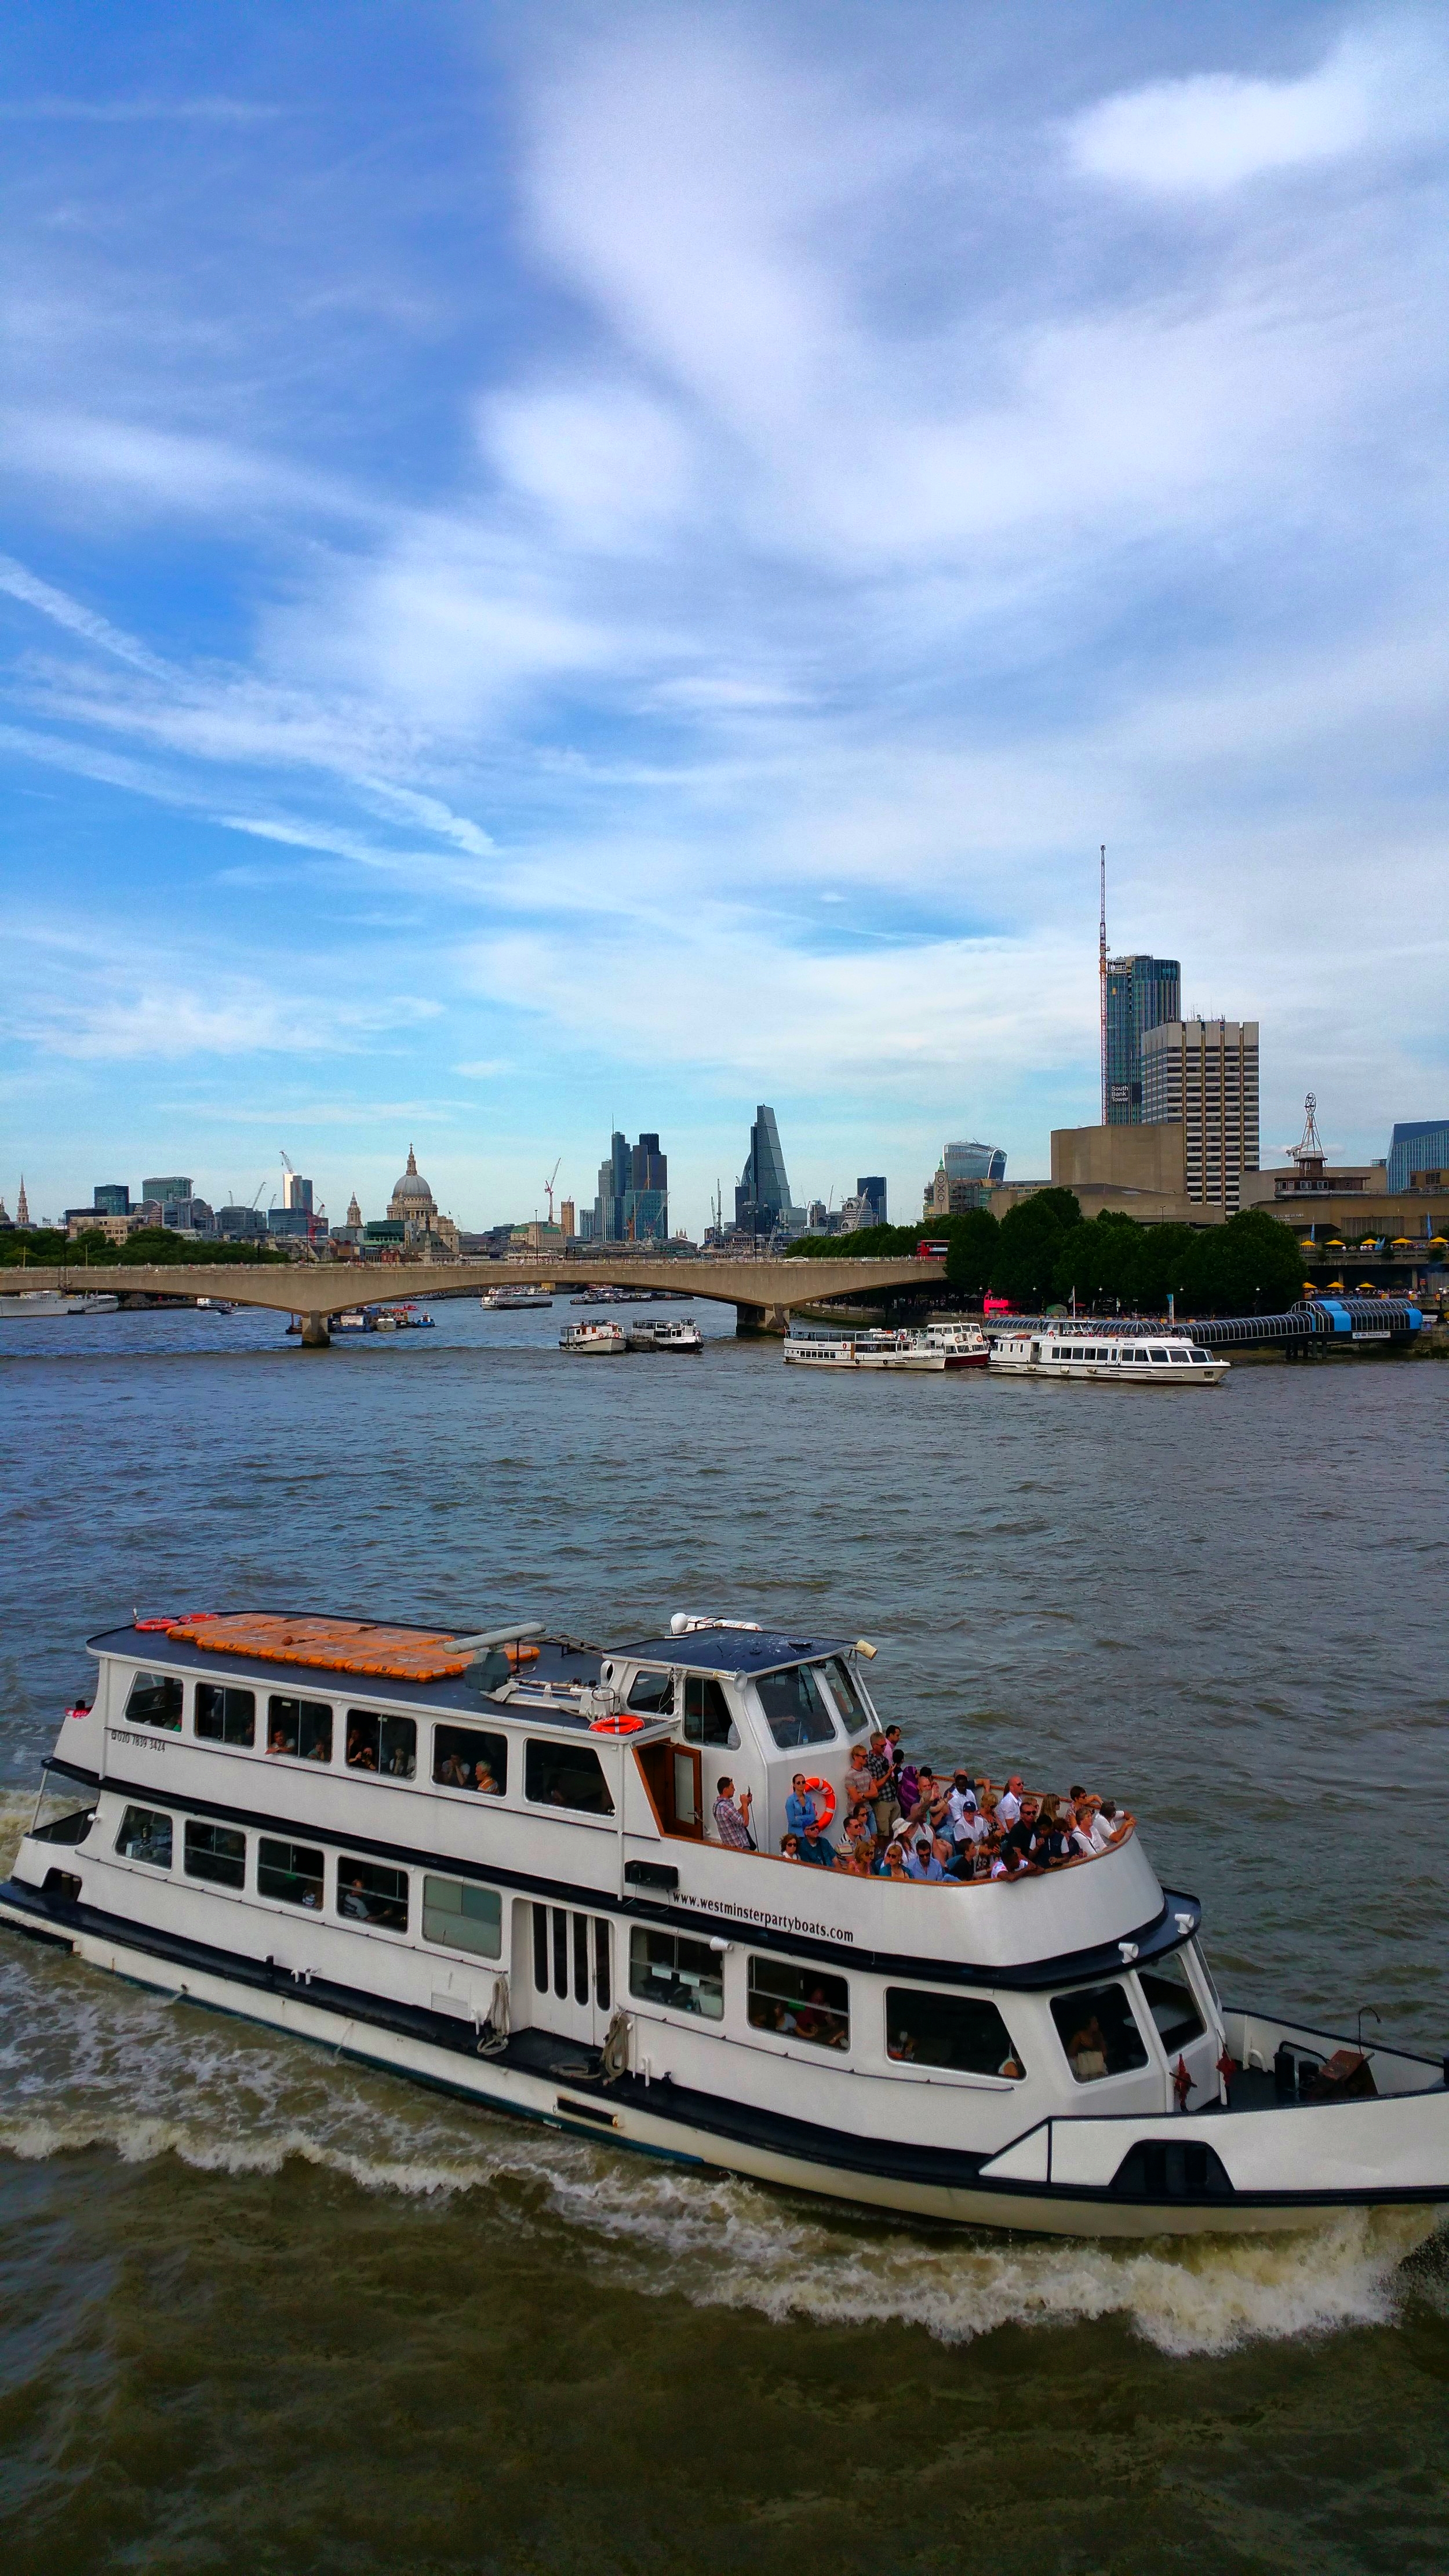 Sightseeing by boat on the Thames